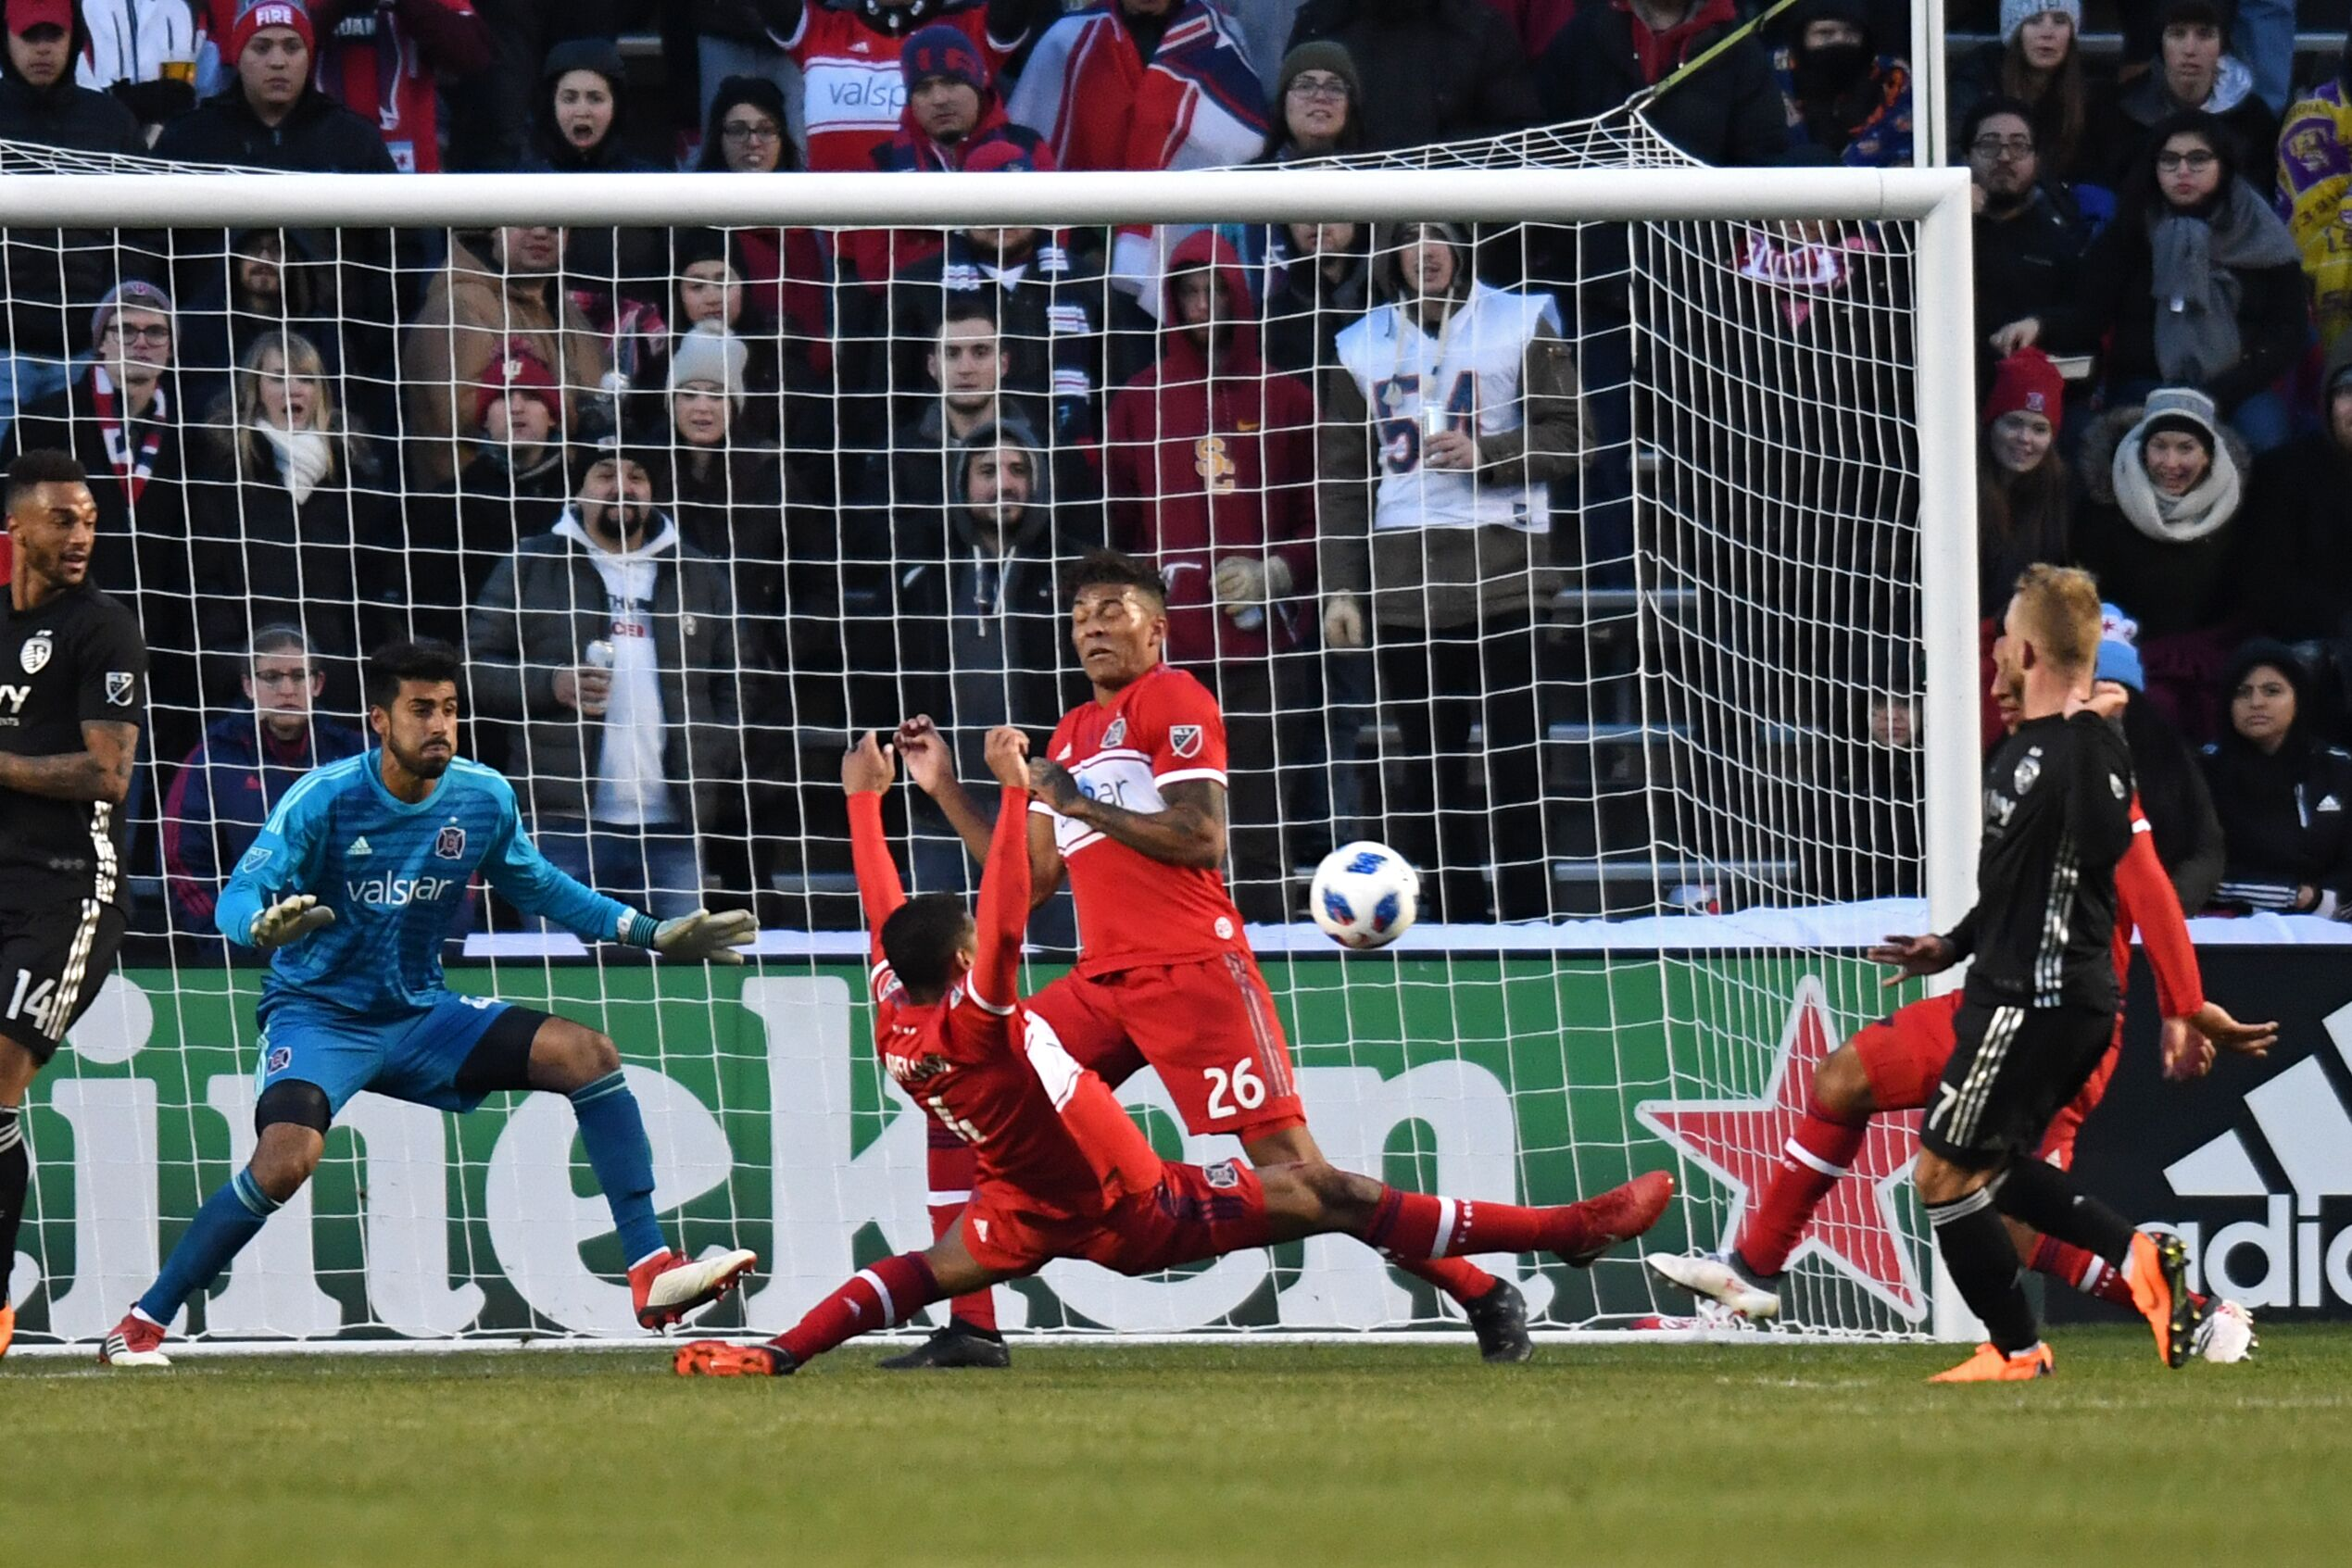 930213858-soccer-mar-10-mls-sporting-kansas-city-at-chicago-fire.jpg